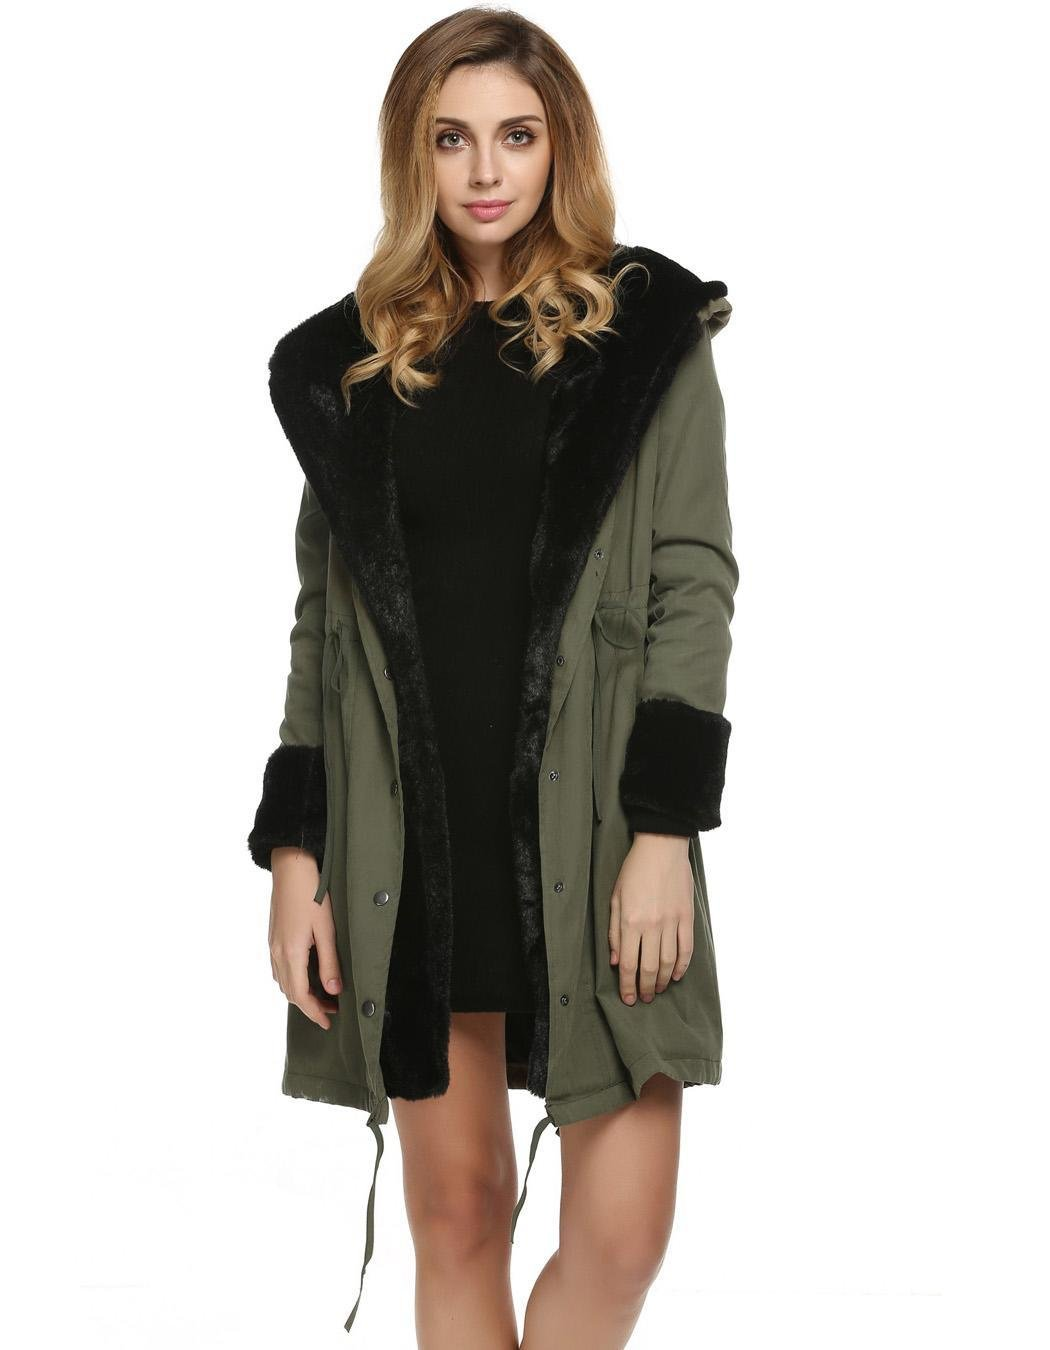 Bifast Girls Fashion Celebrity Street Style Faux Fur Warm Coat Army Green S